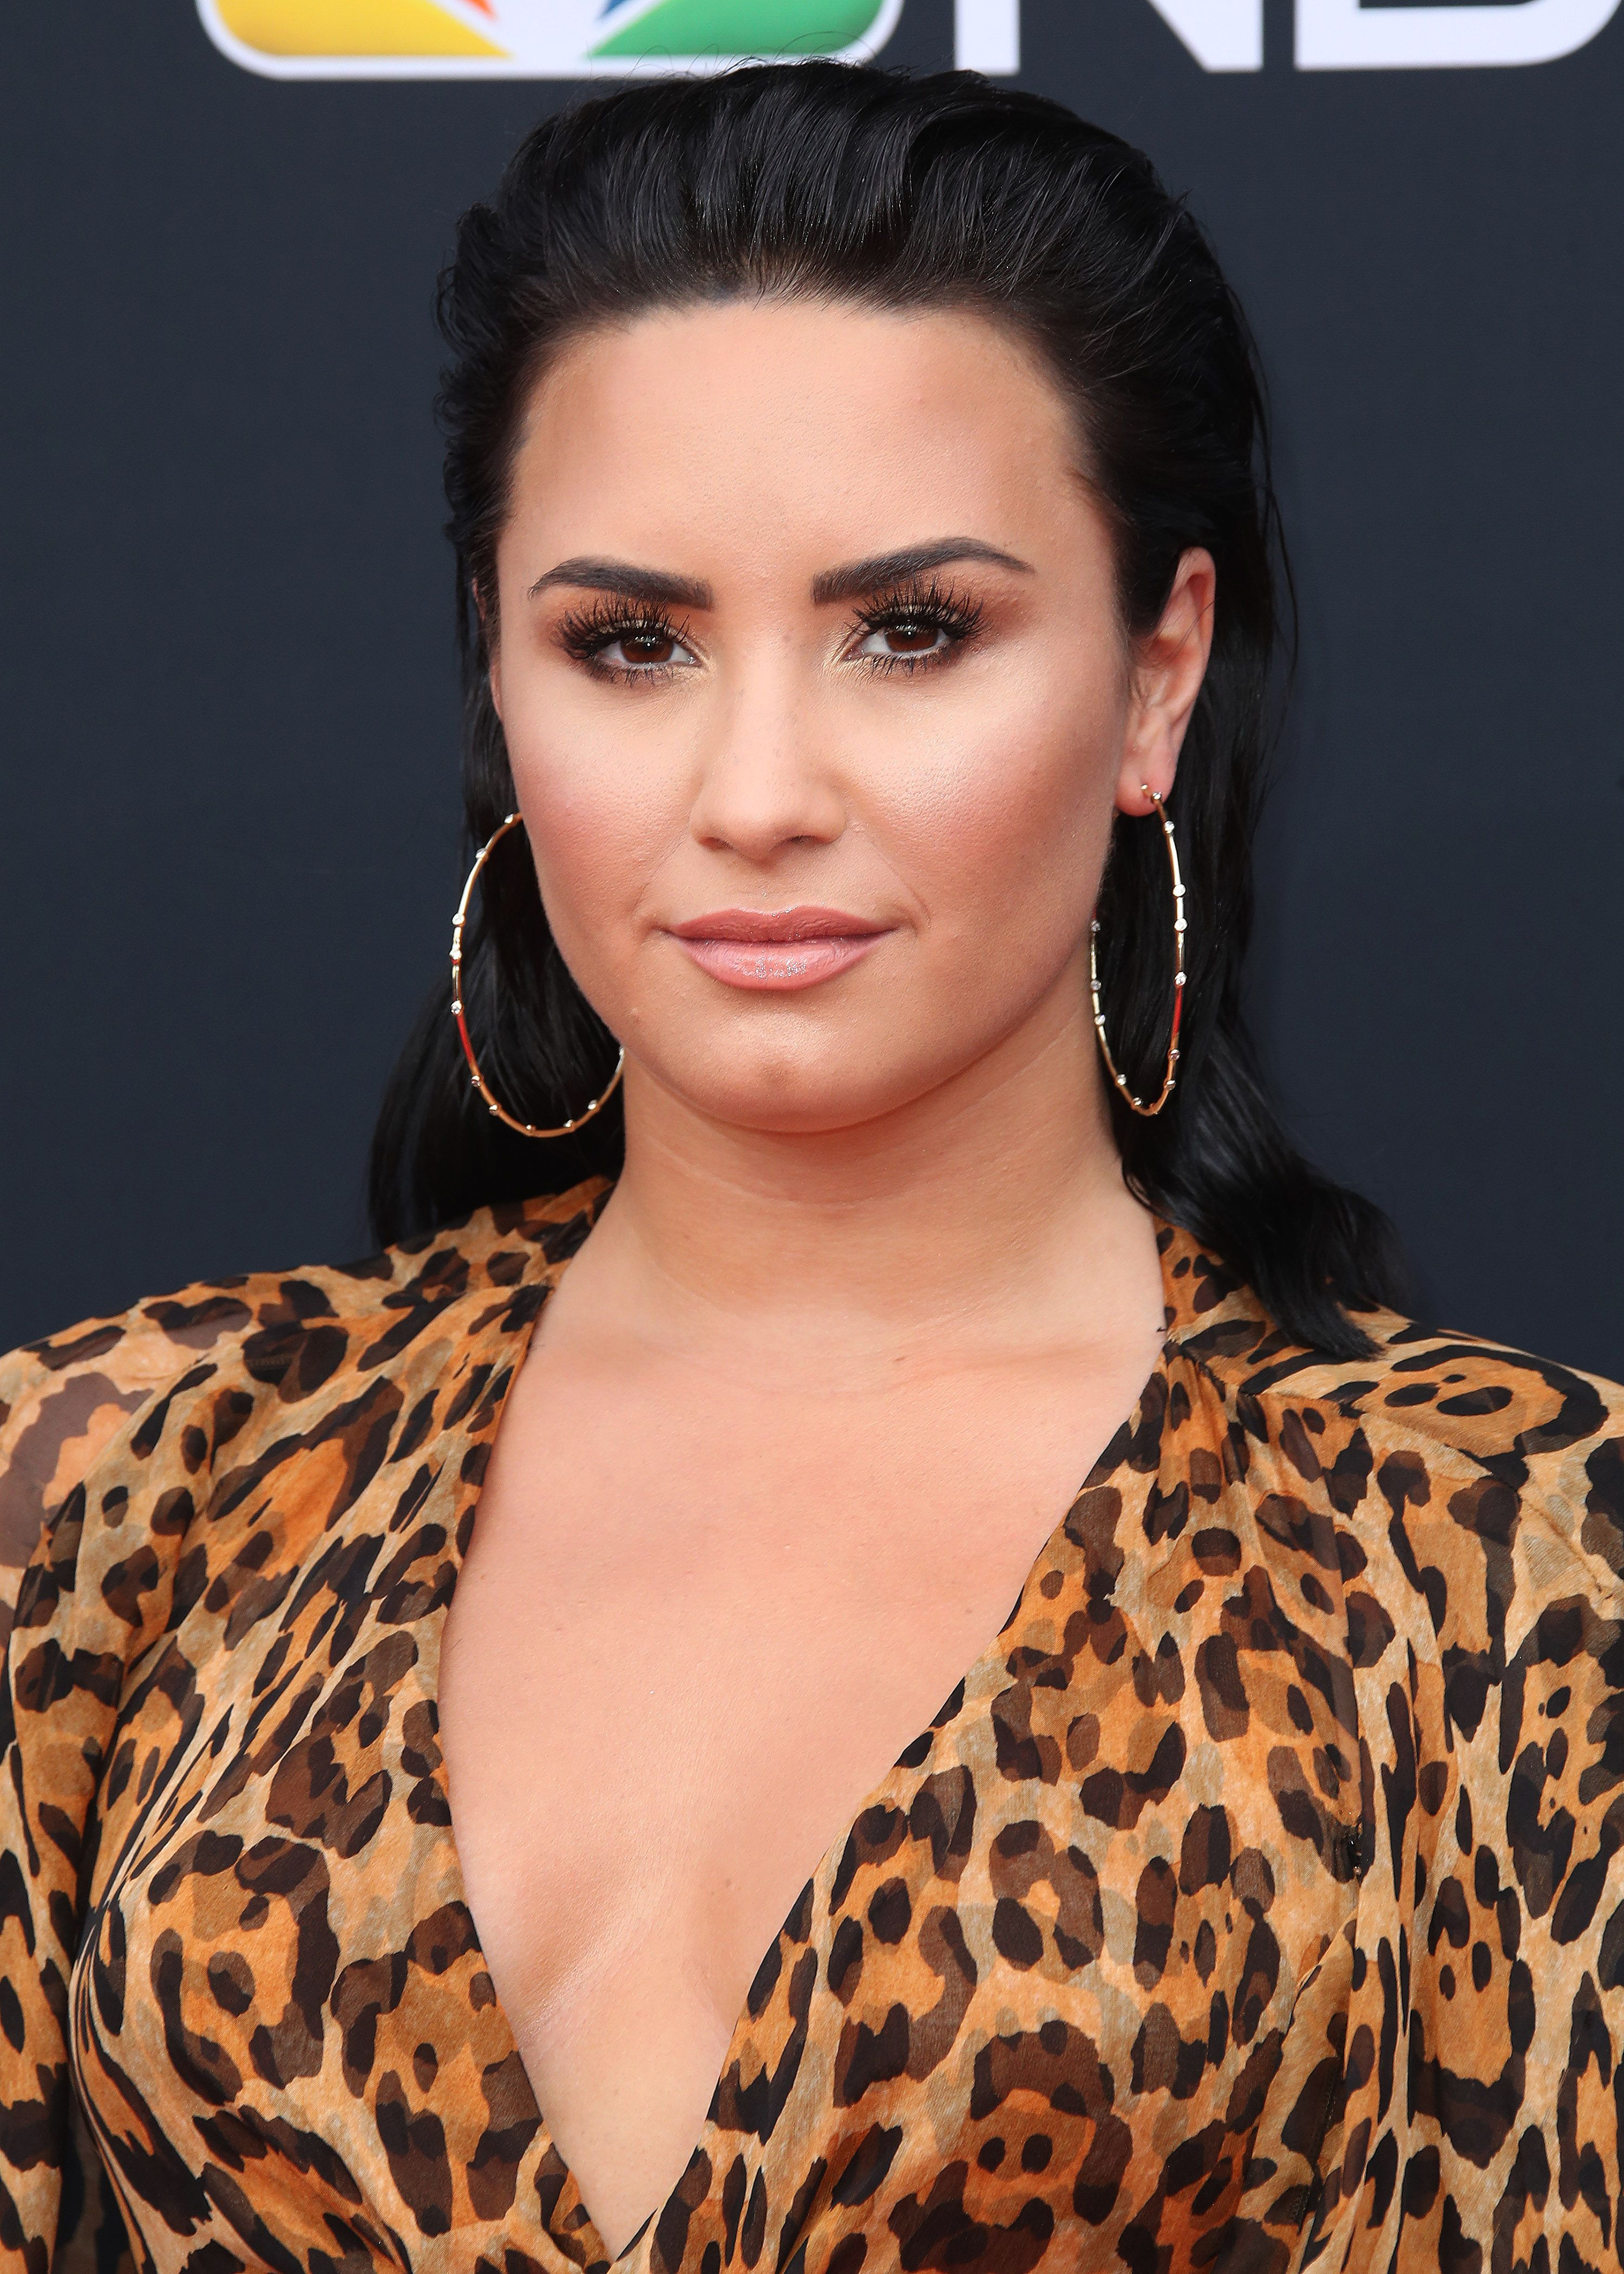 Demi Lovato Gets Her Ass Felt Up On Stage nude (41 pics)